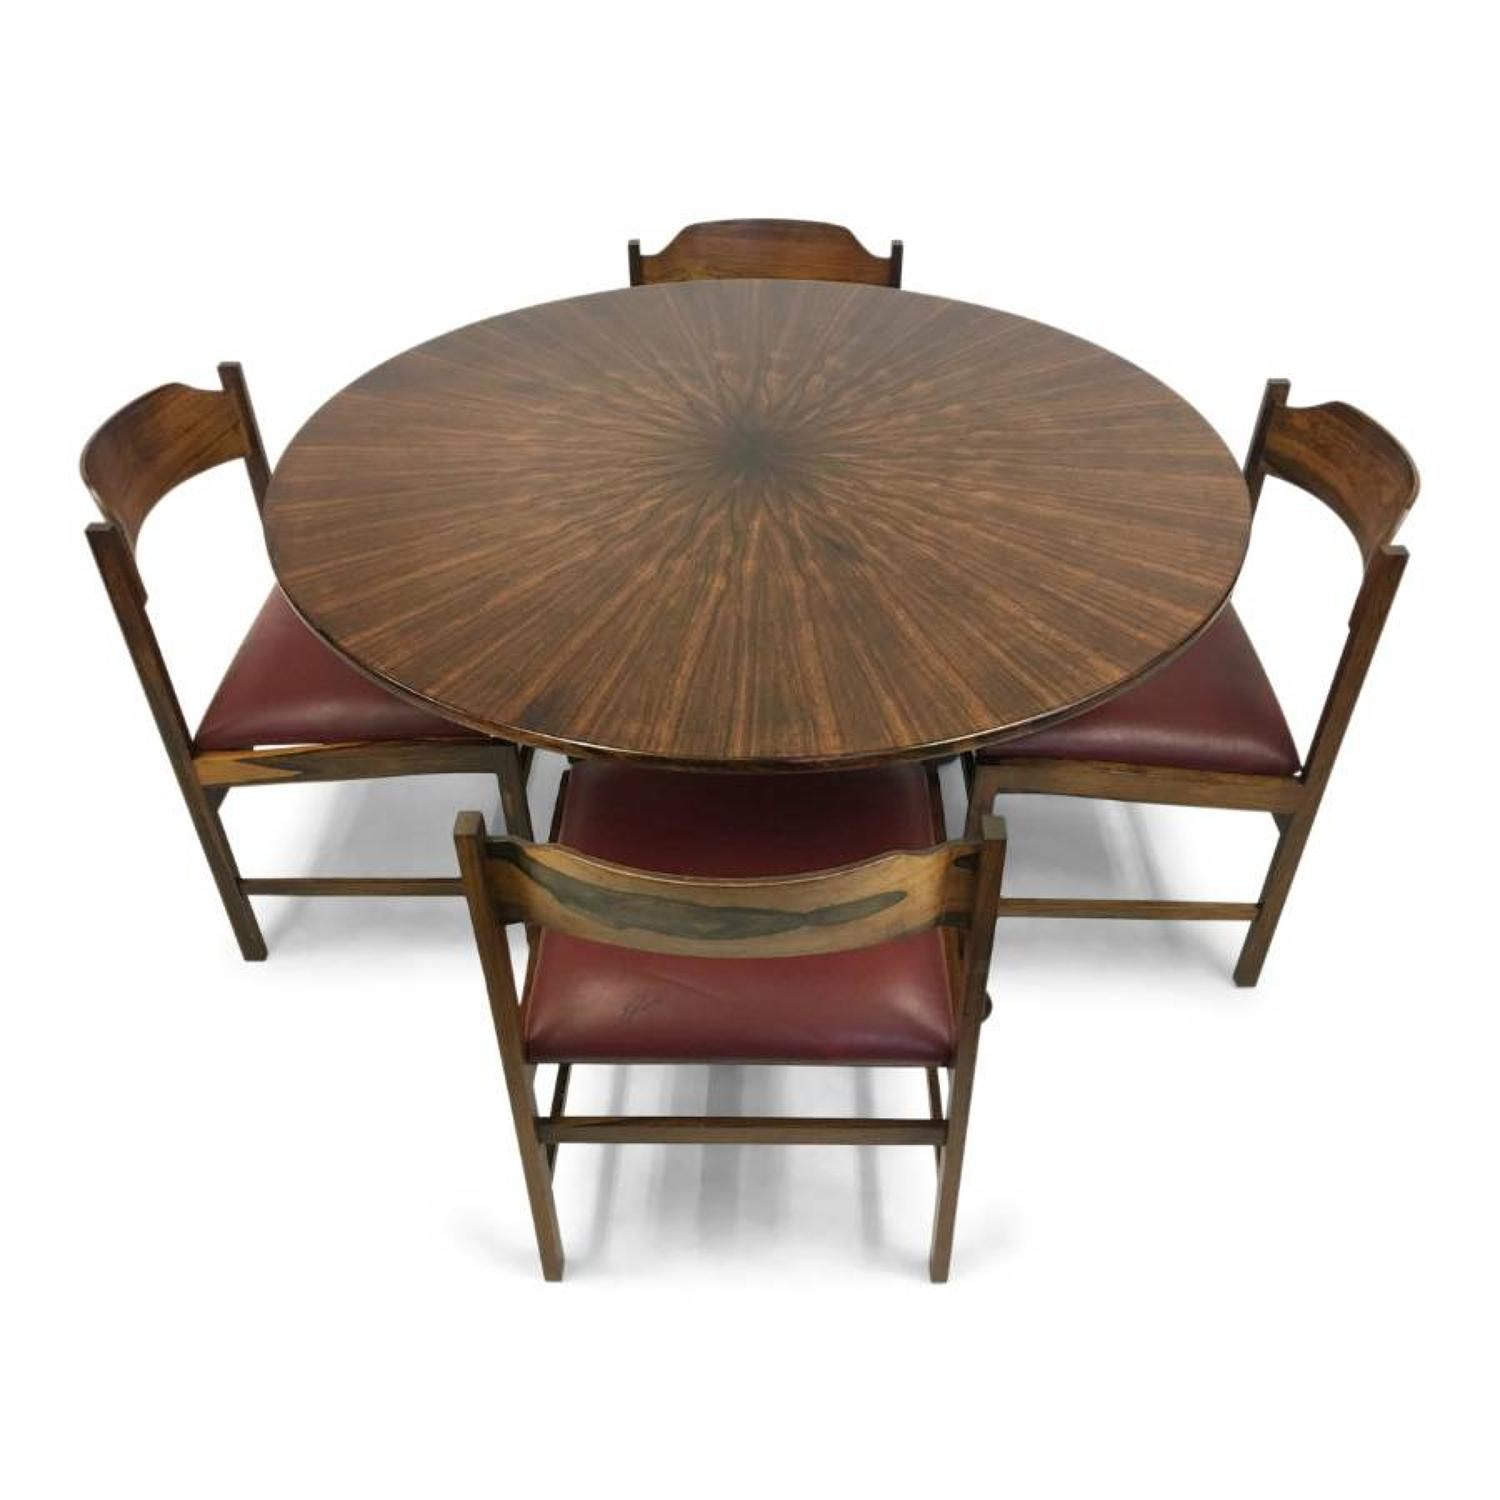 1960s Italian rosewood dining table and chairs